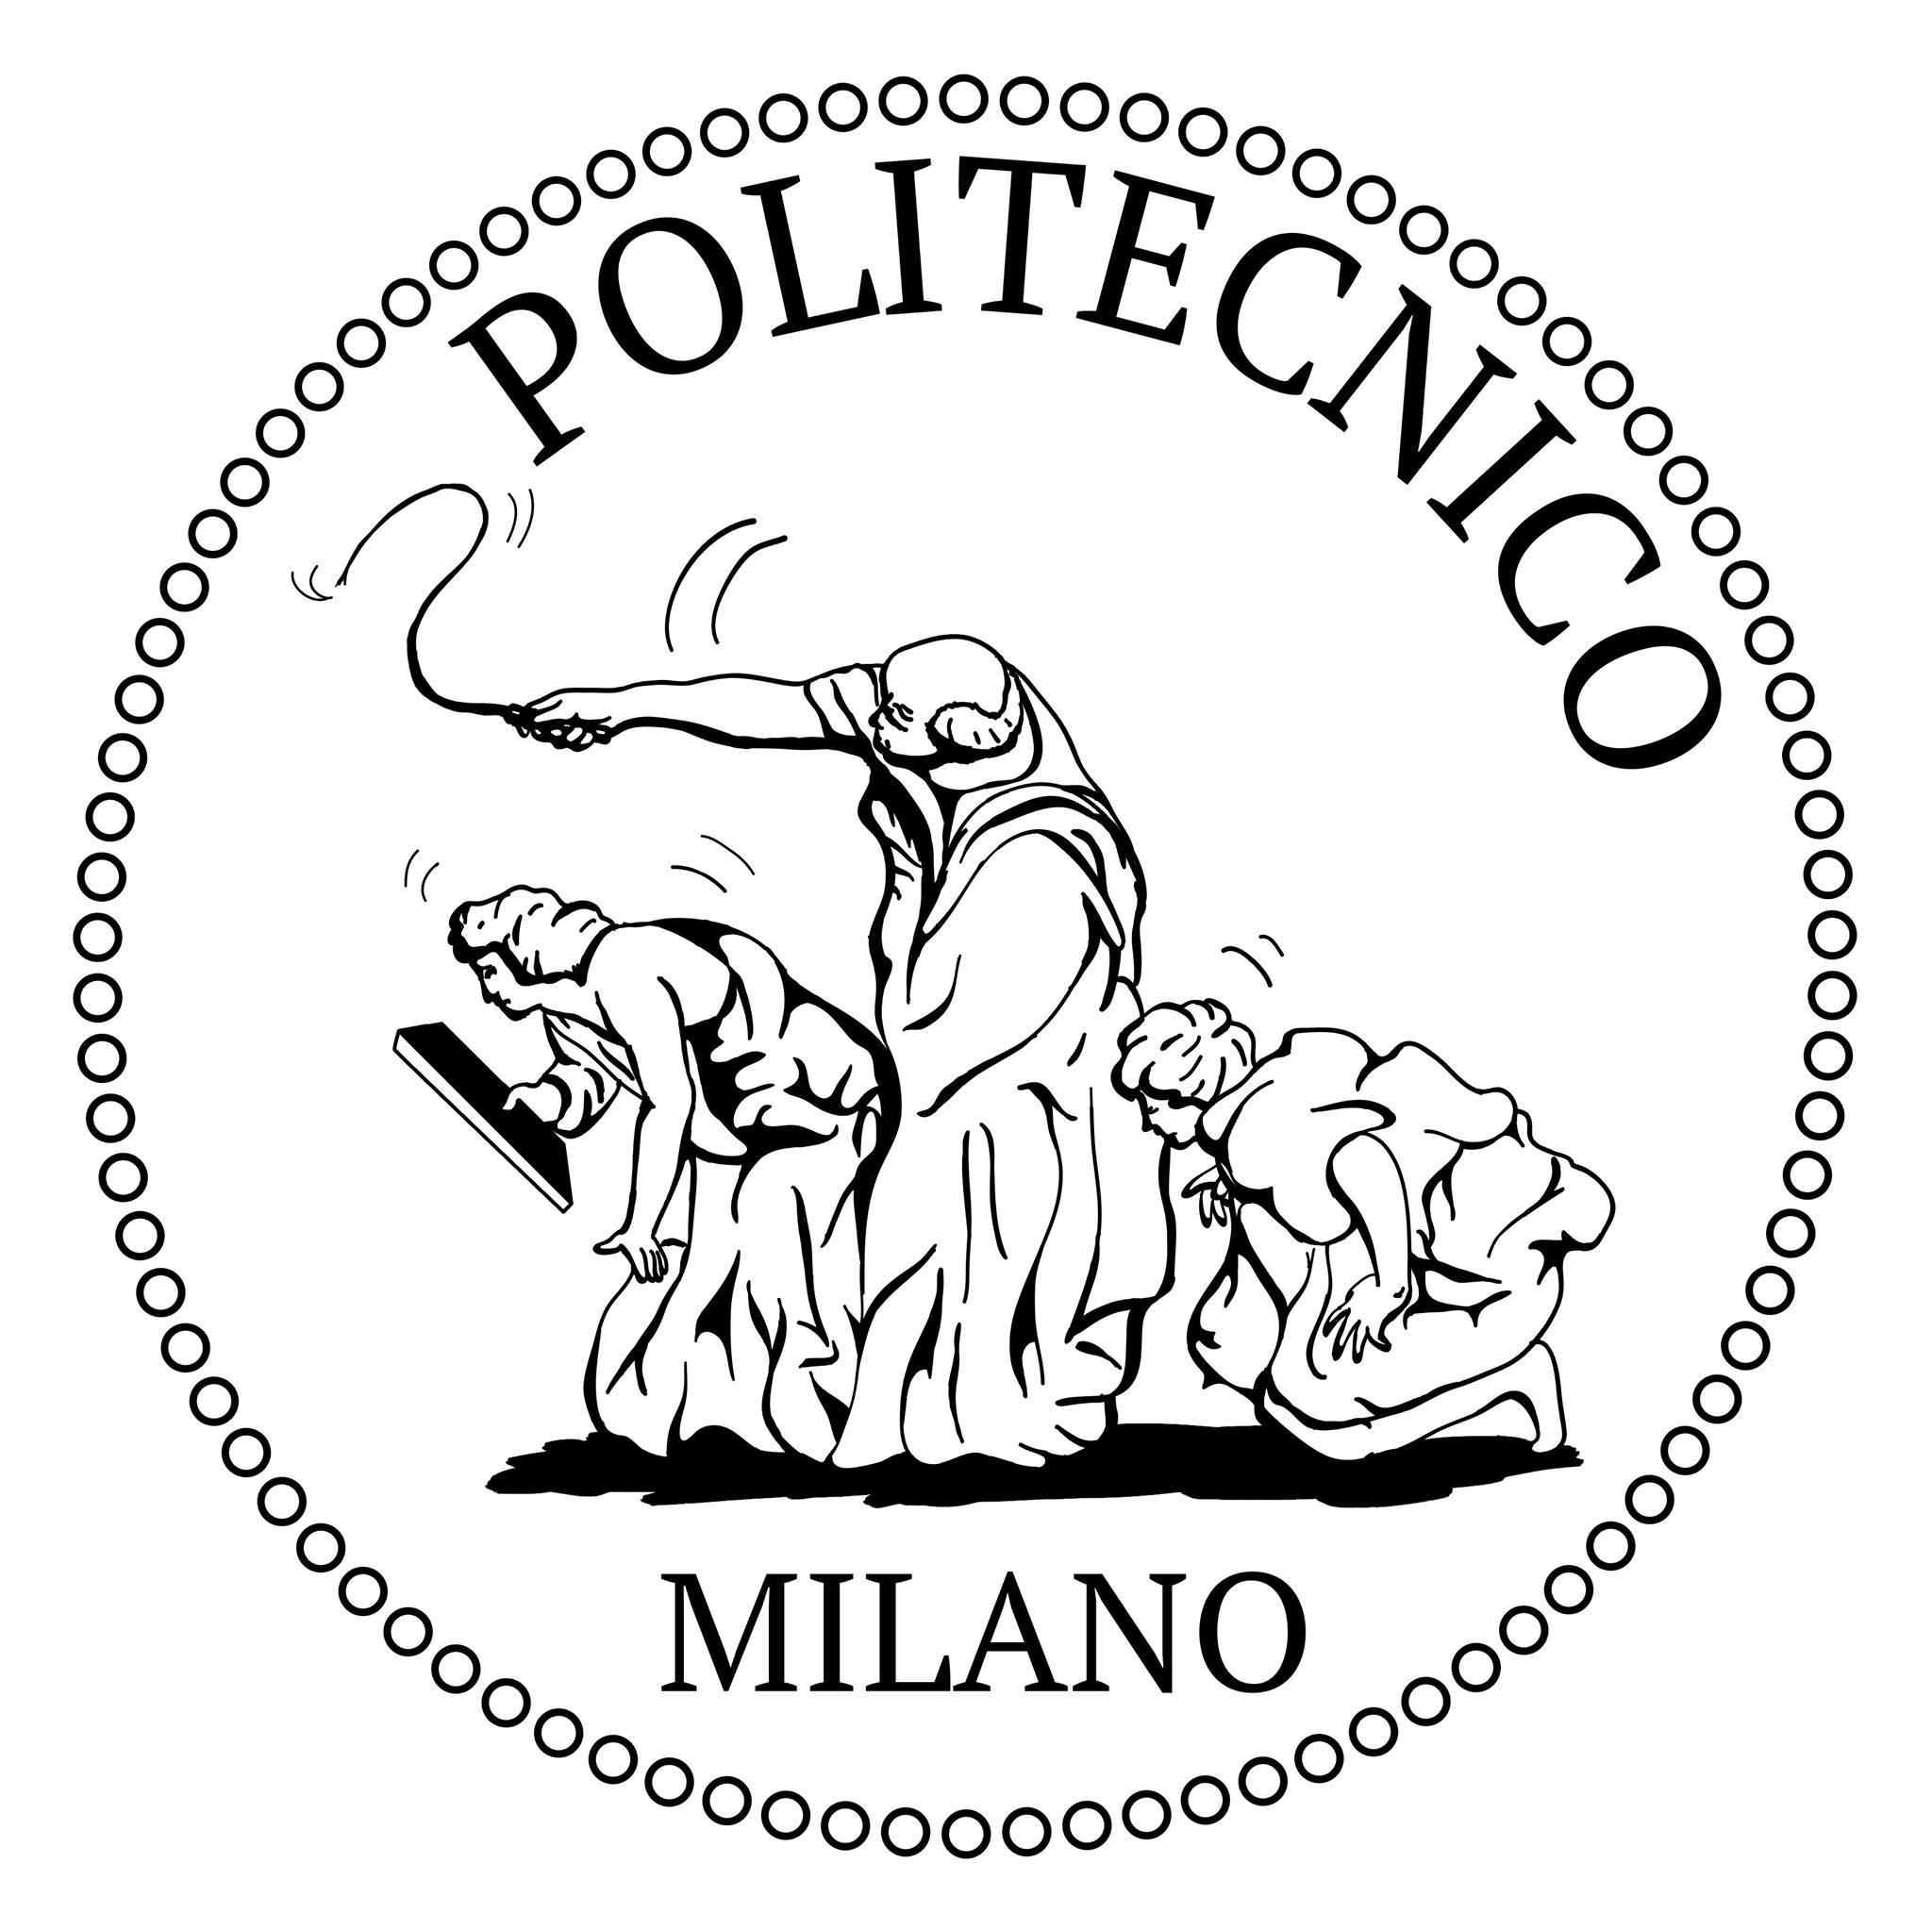 Logo of the Politecnico di Milano